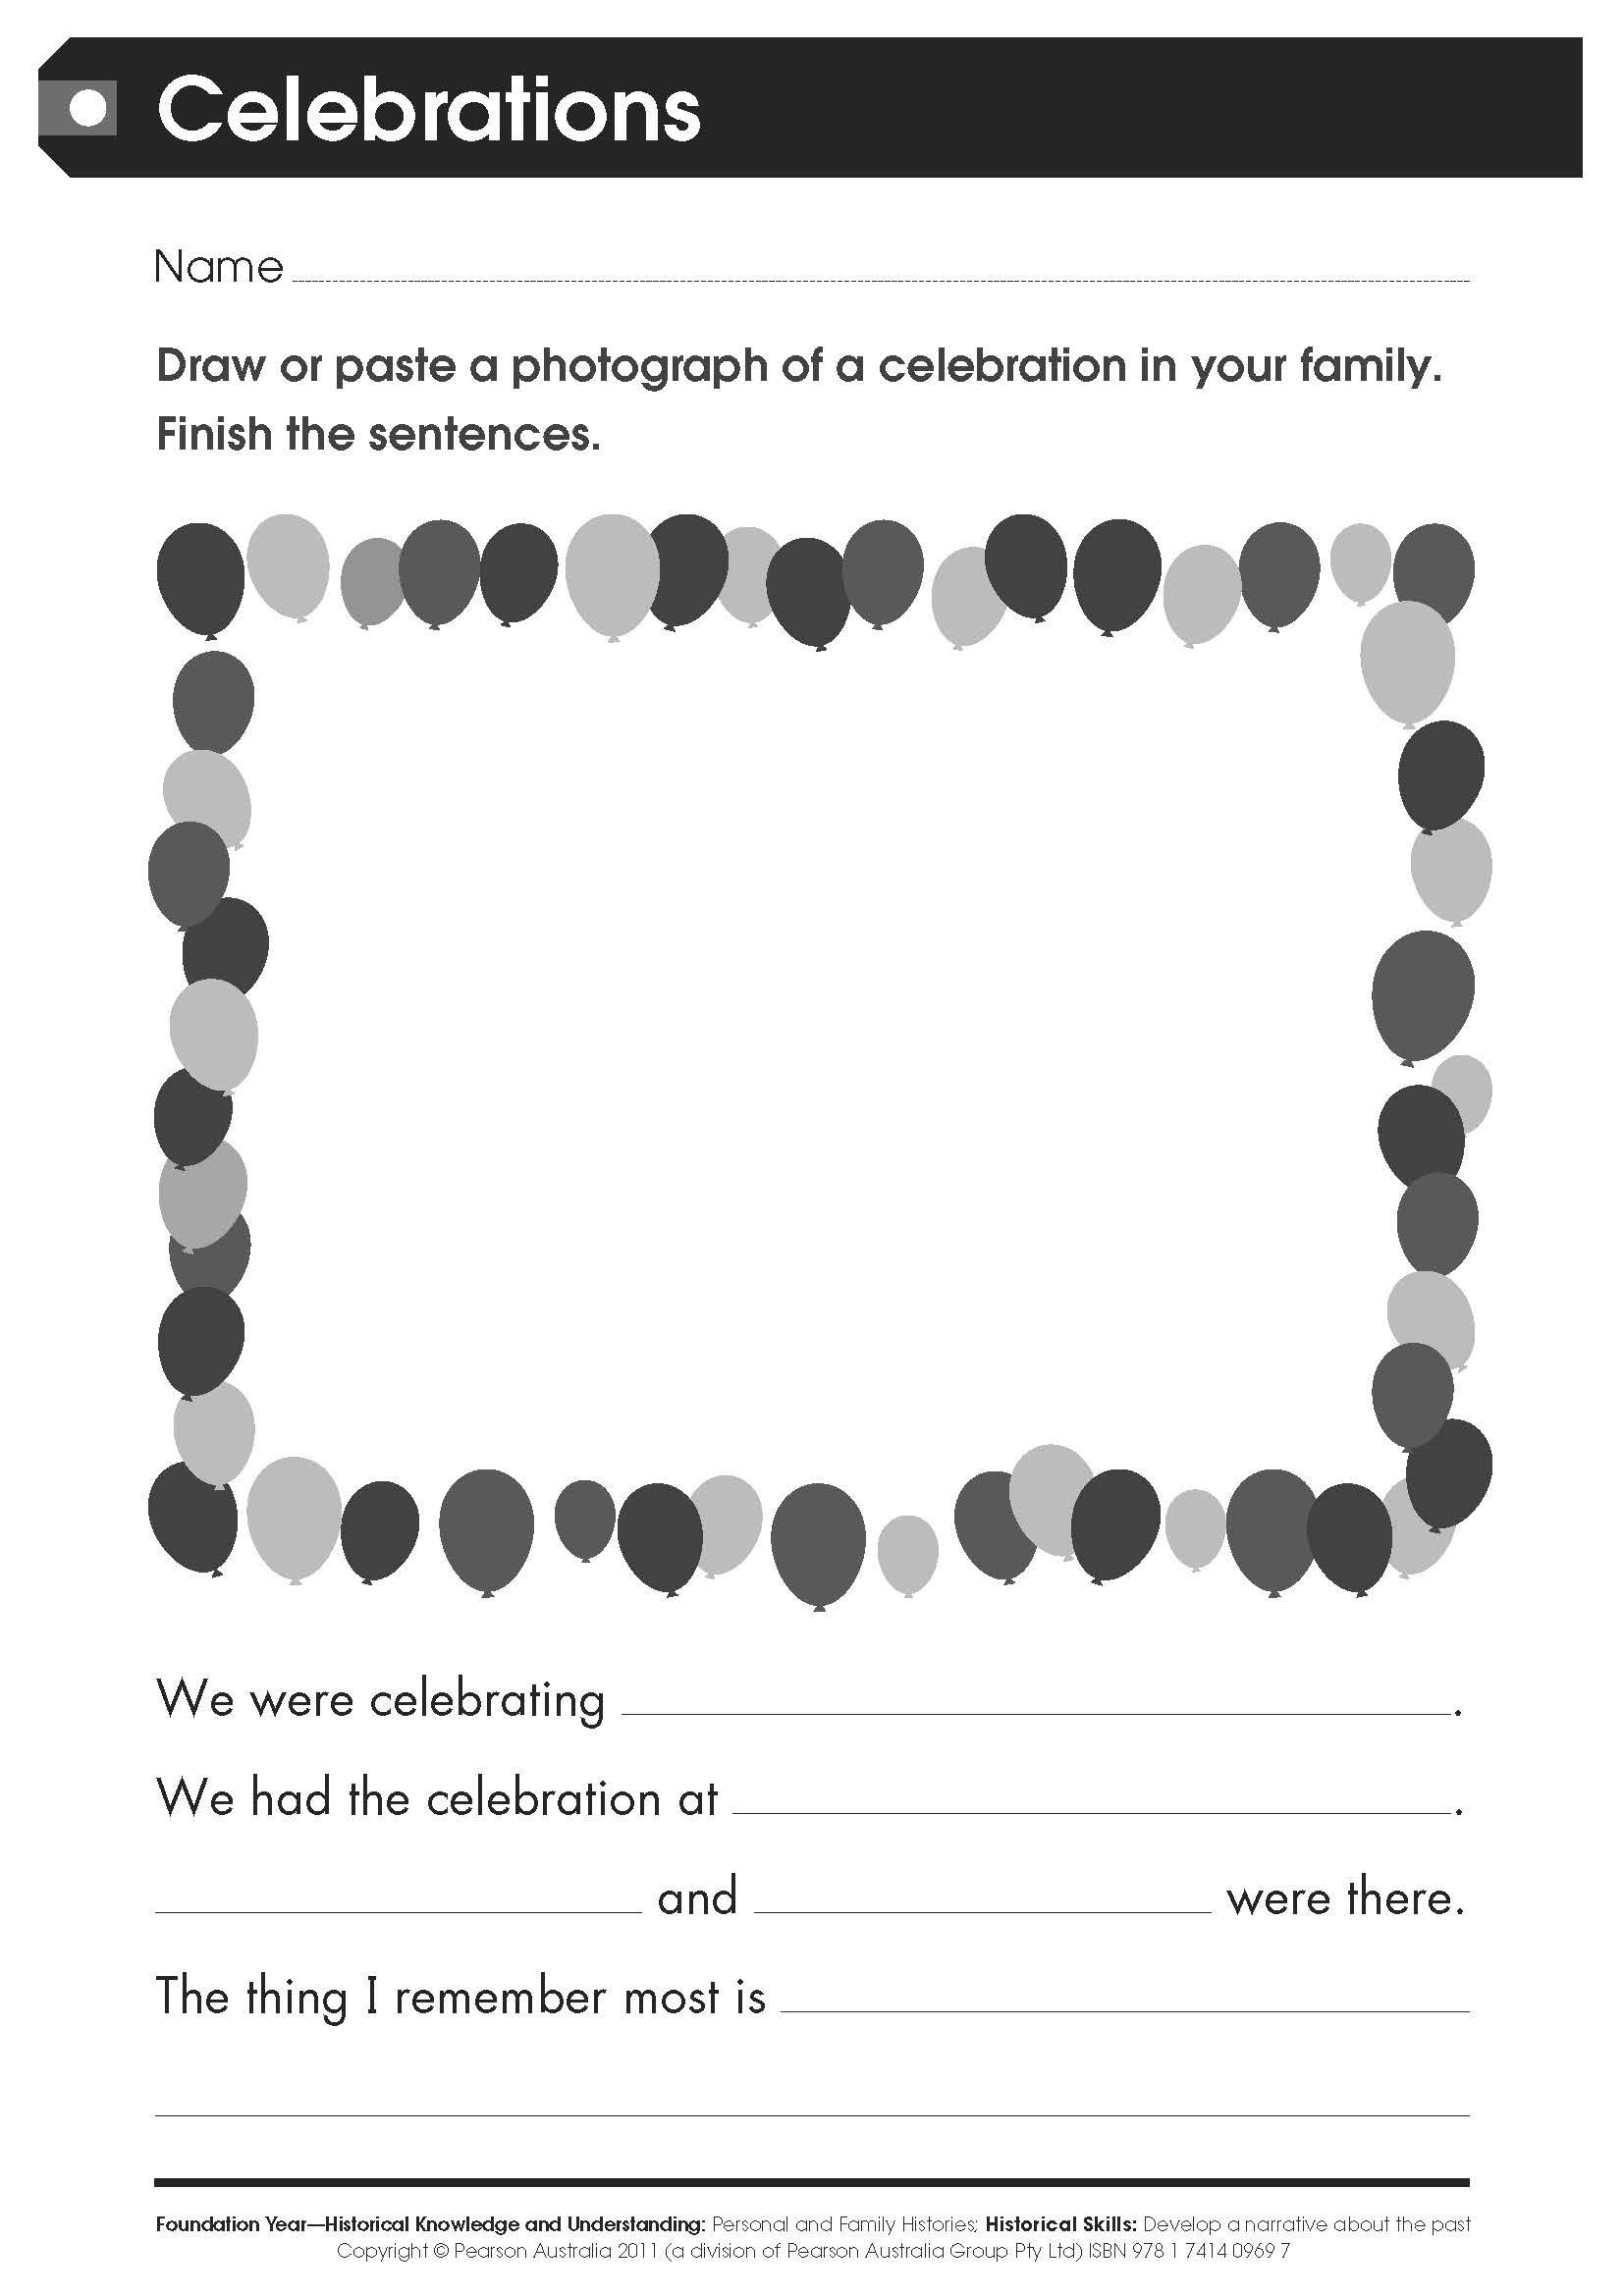 Free Worksheet Celebrations For Lower Primary Students This Worksheet Has Been Taken From